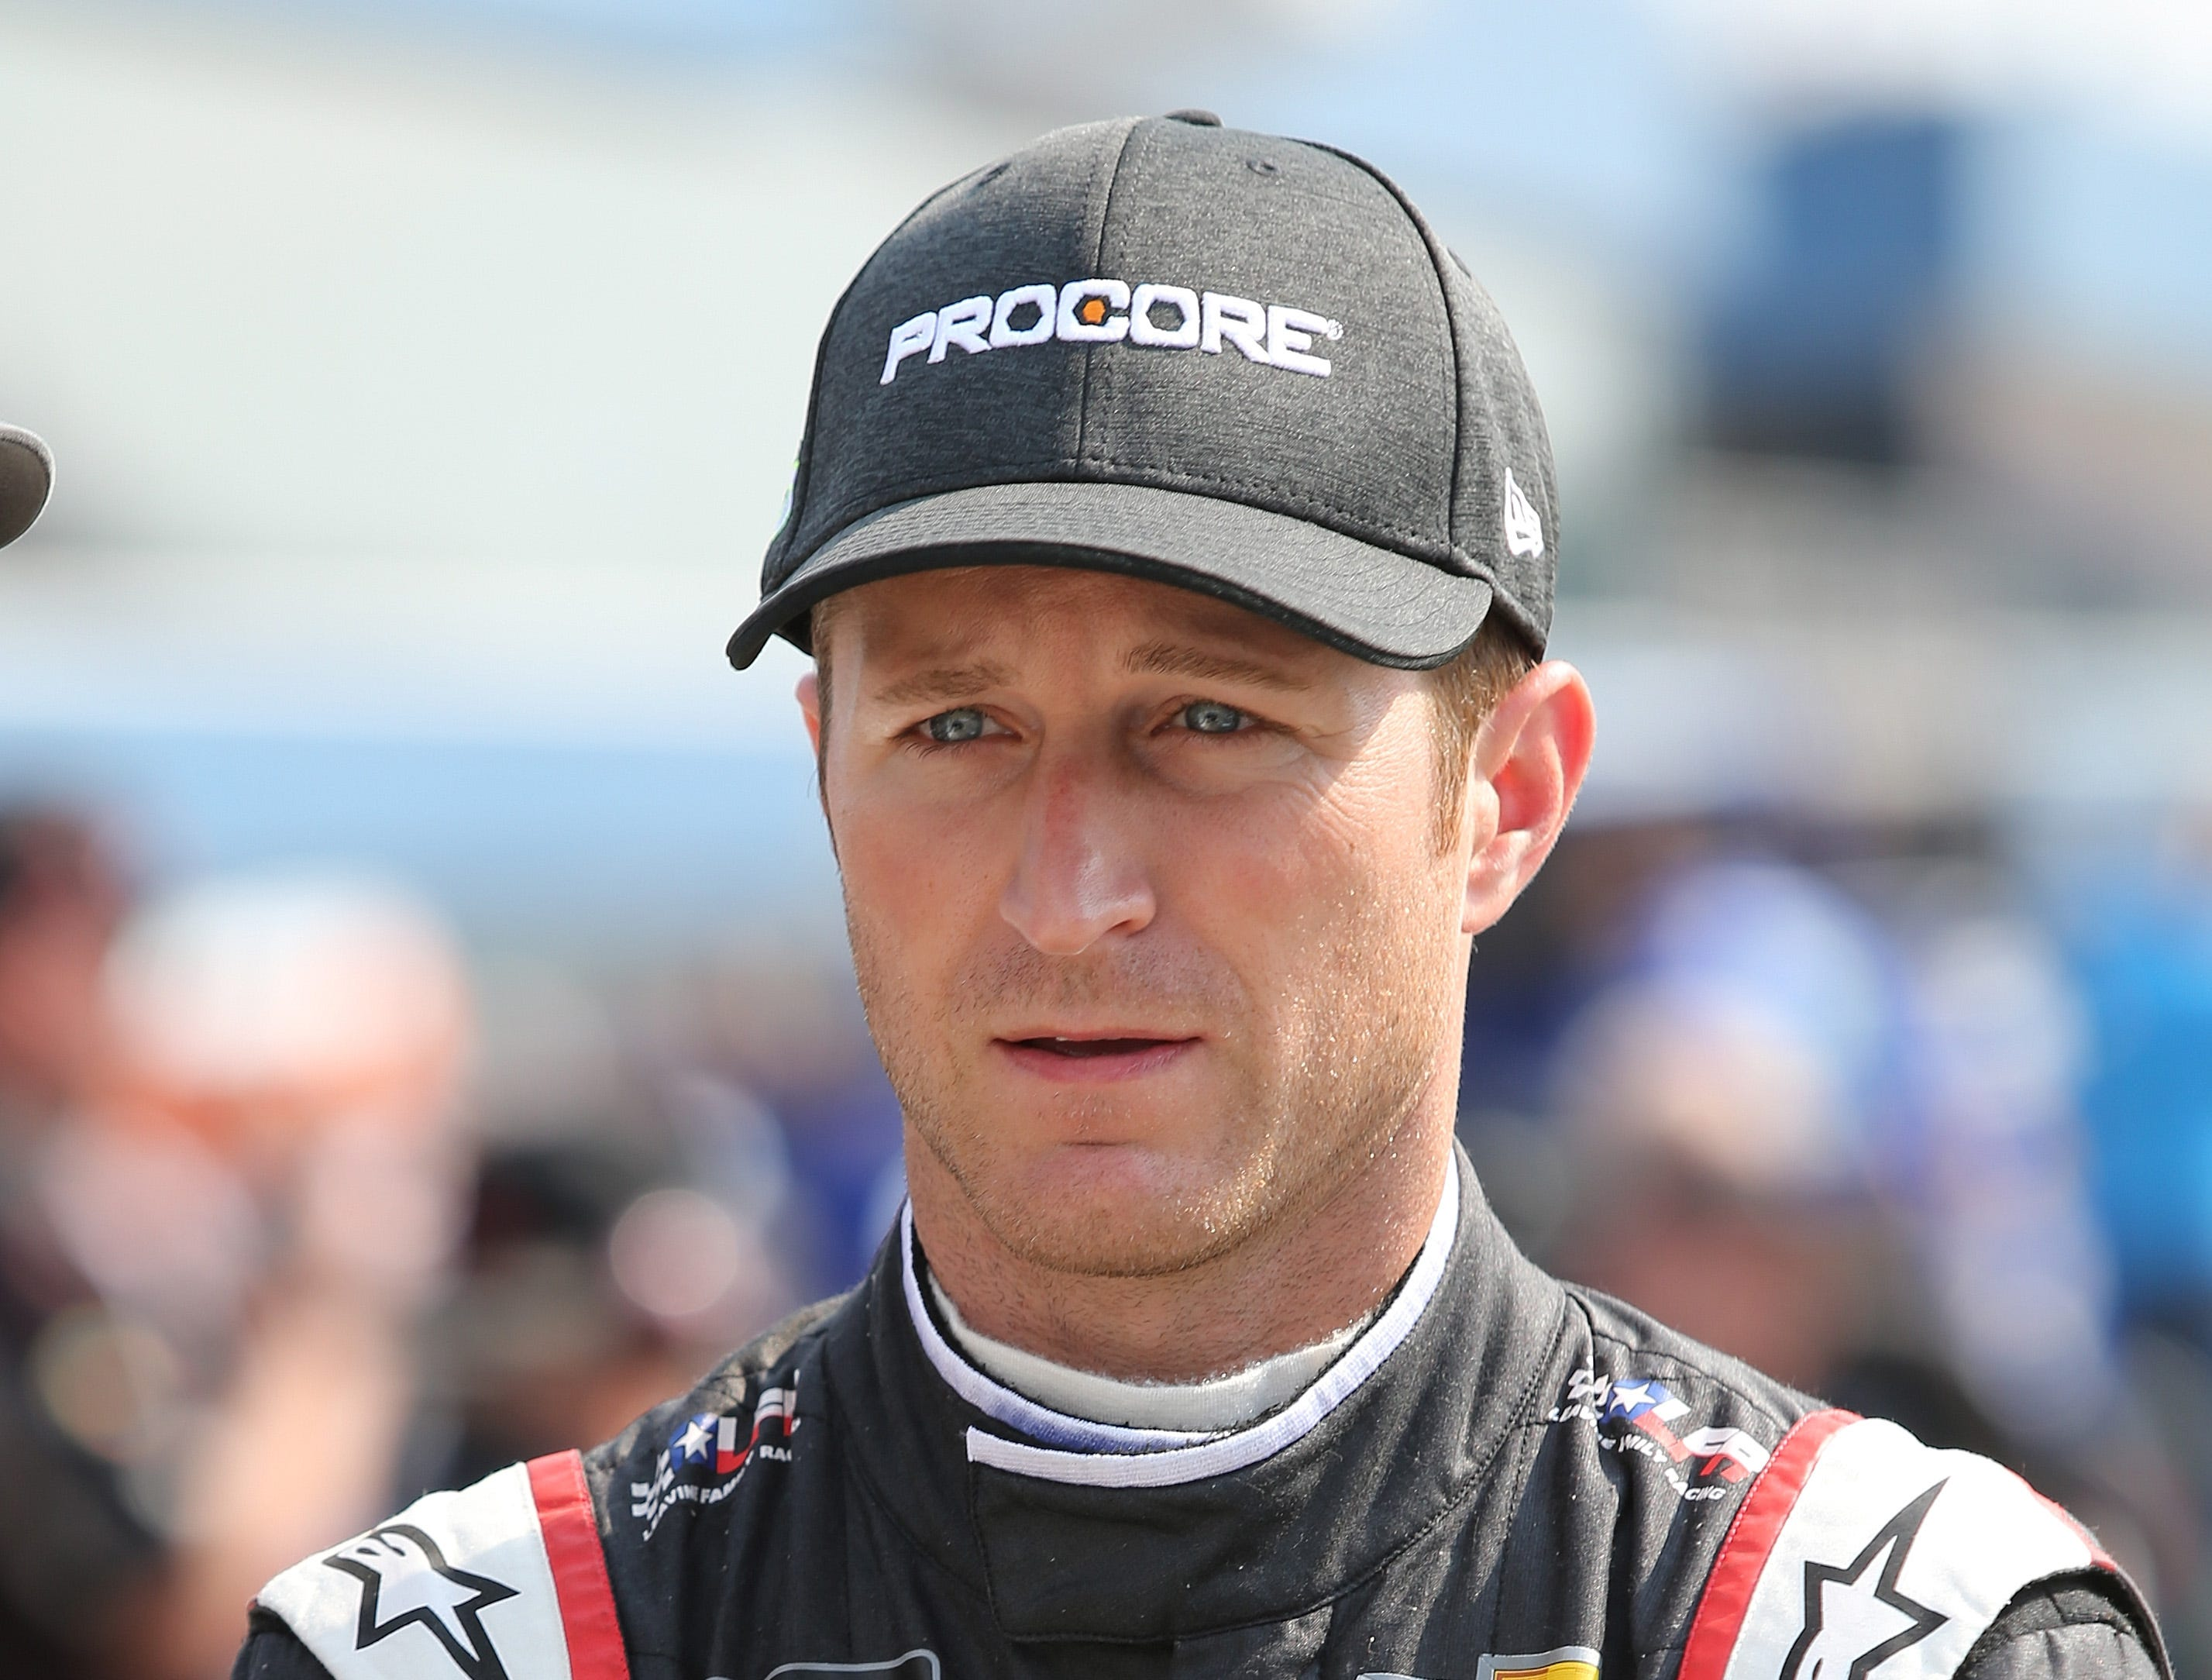 Kasey Kahne, driver of the #95 WRL General Contractors Chevrolet, stands by his car during qualifying for the Monster Energy NASCAR Cup Series Consmers Energy 400 at Michigan International Speedway on August 10, 2018 in Brooklyn, Michigan.